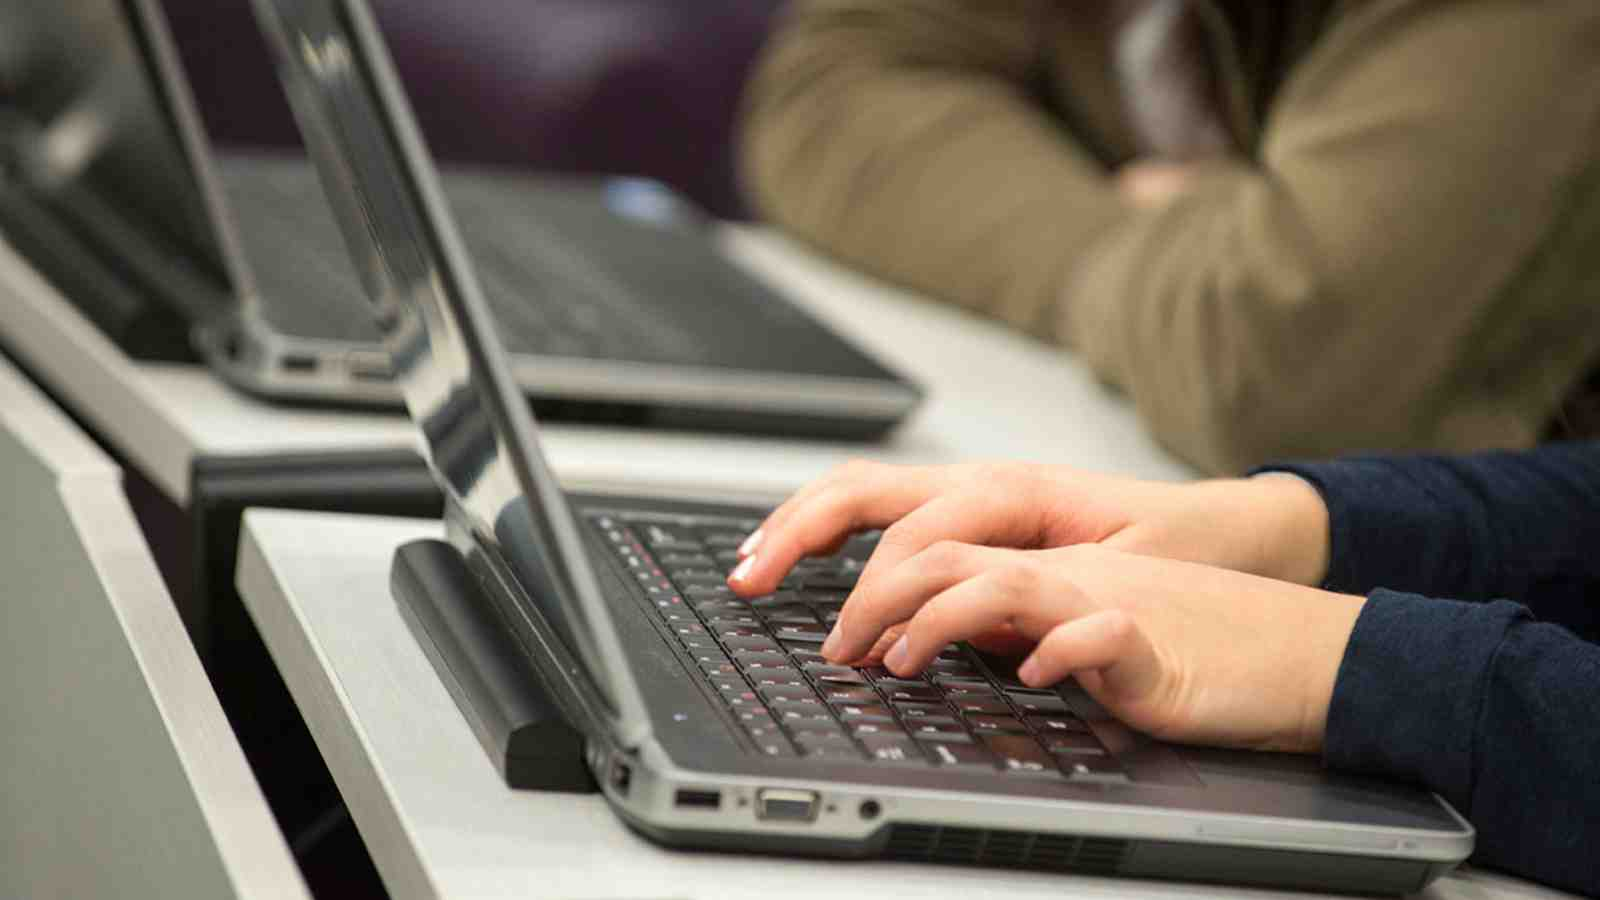 Student working on their laptop